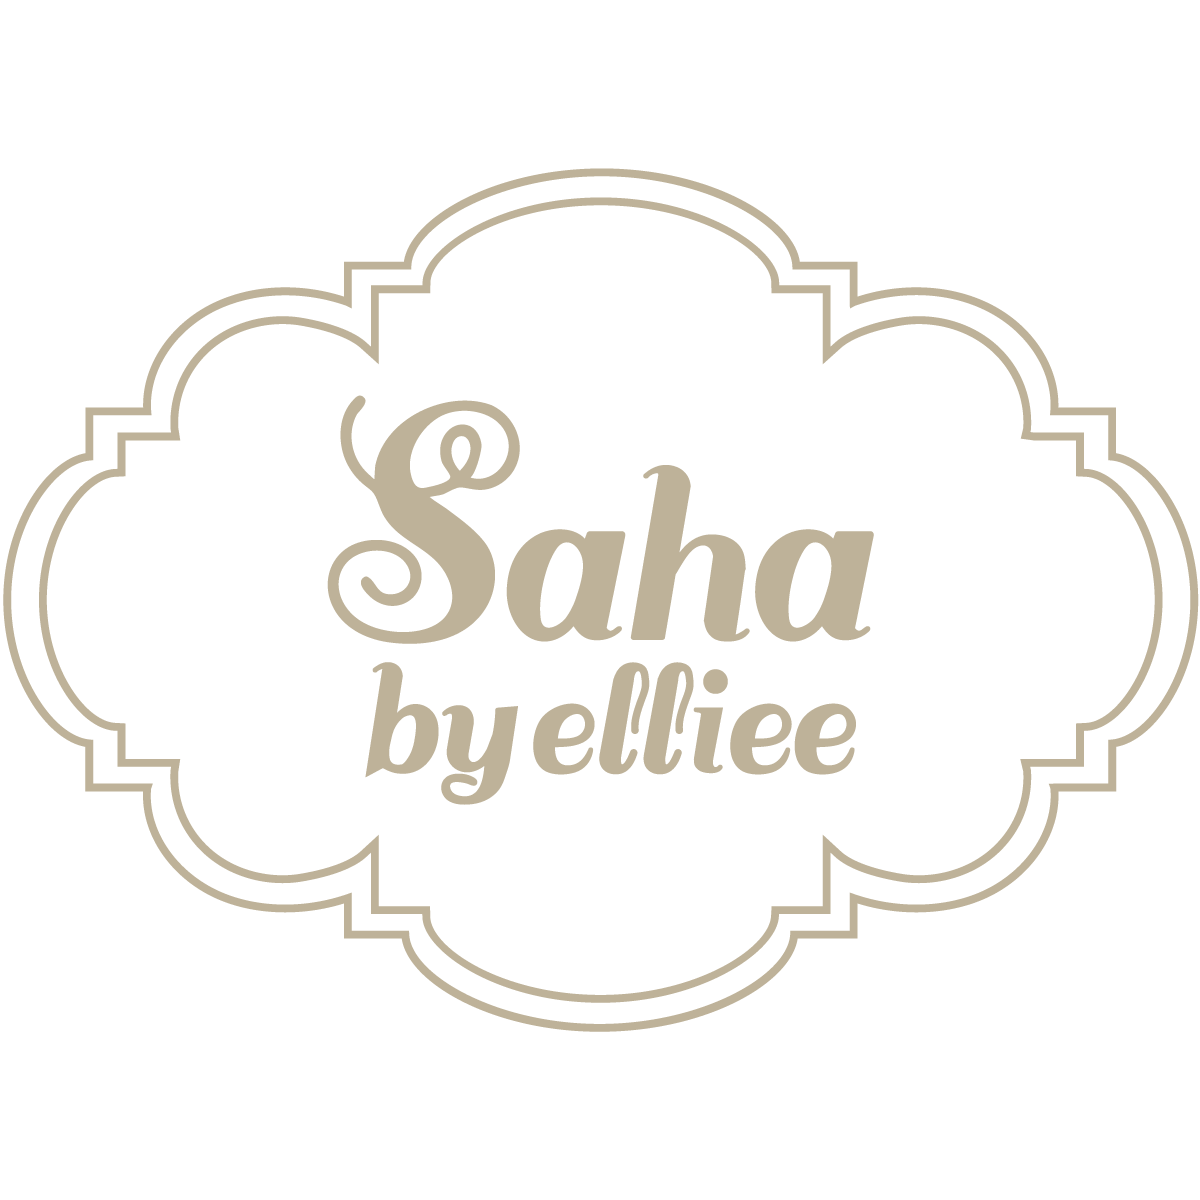 Saha by elliee